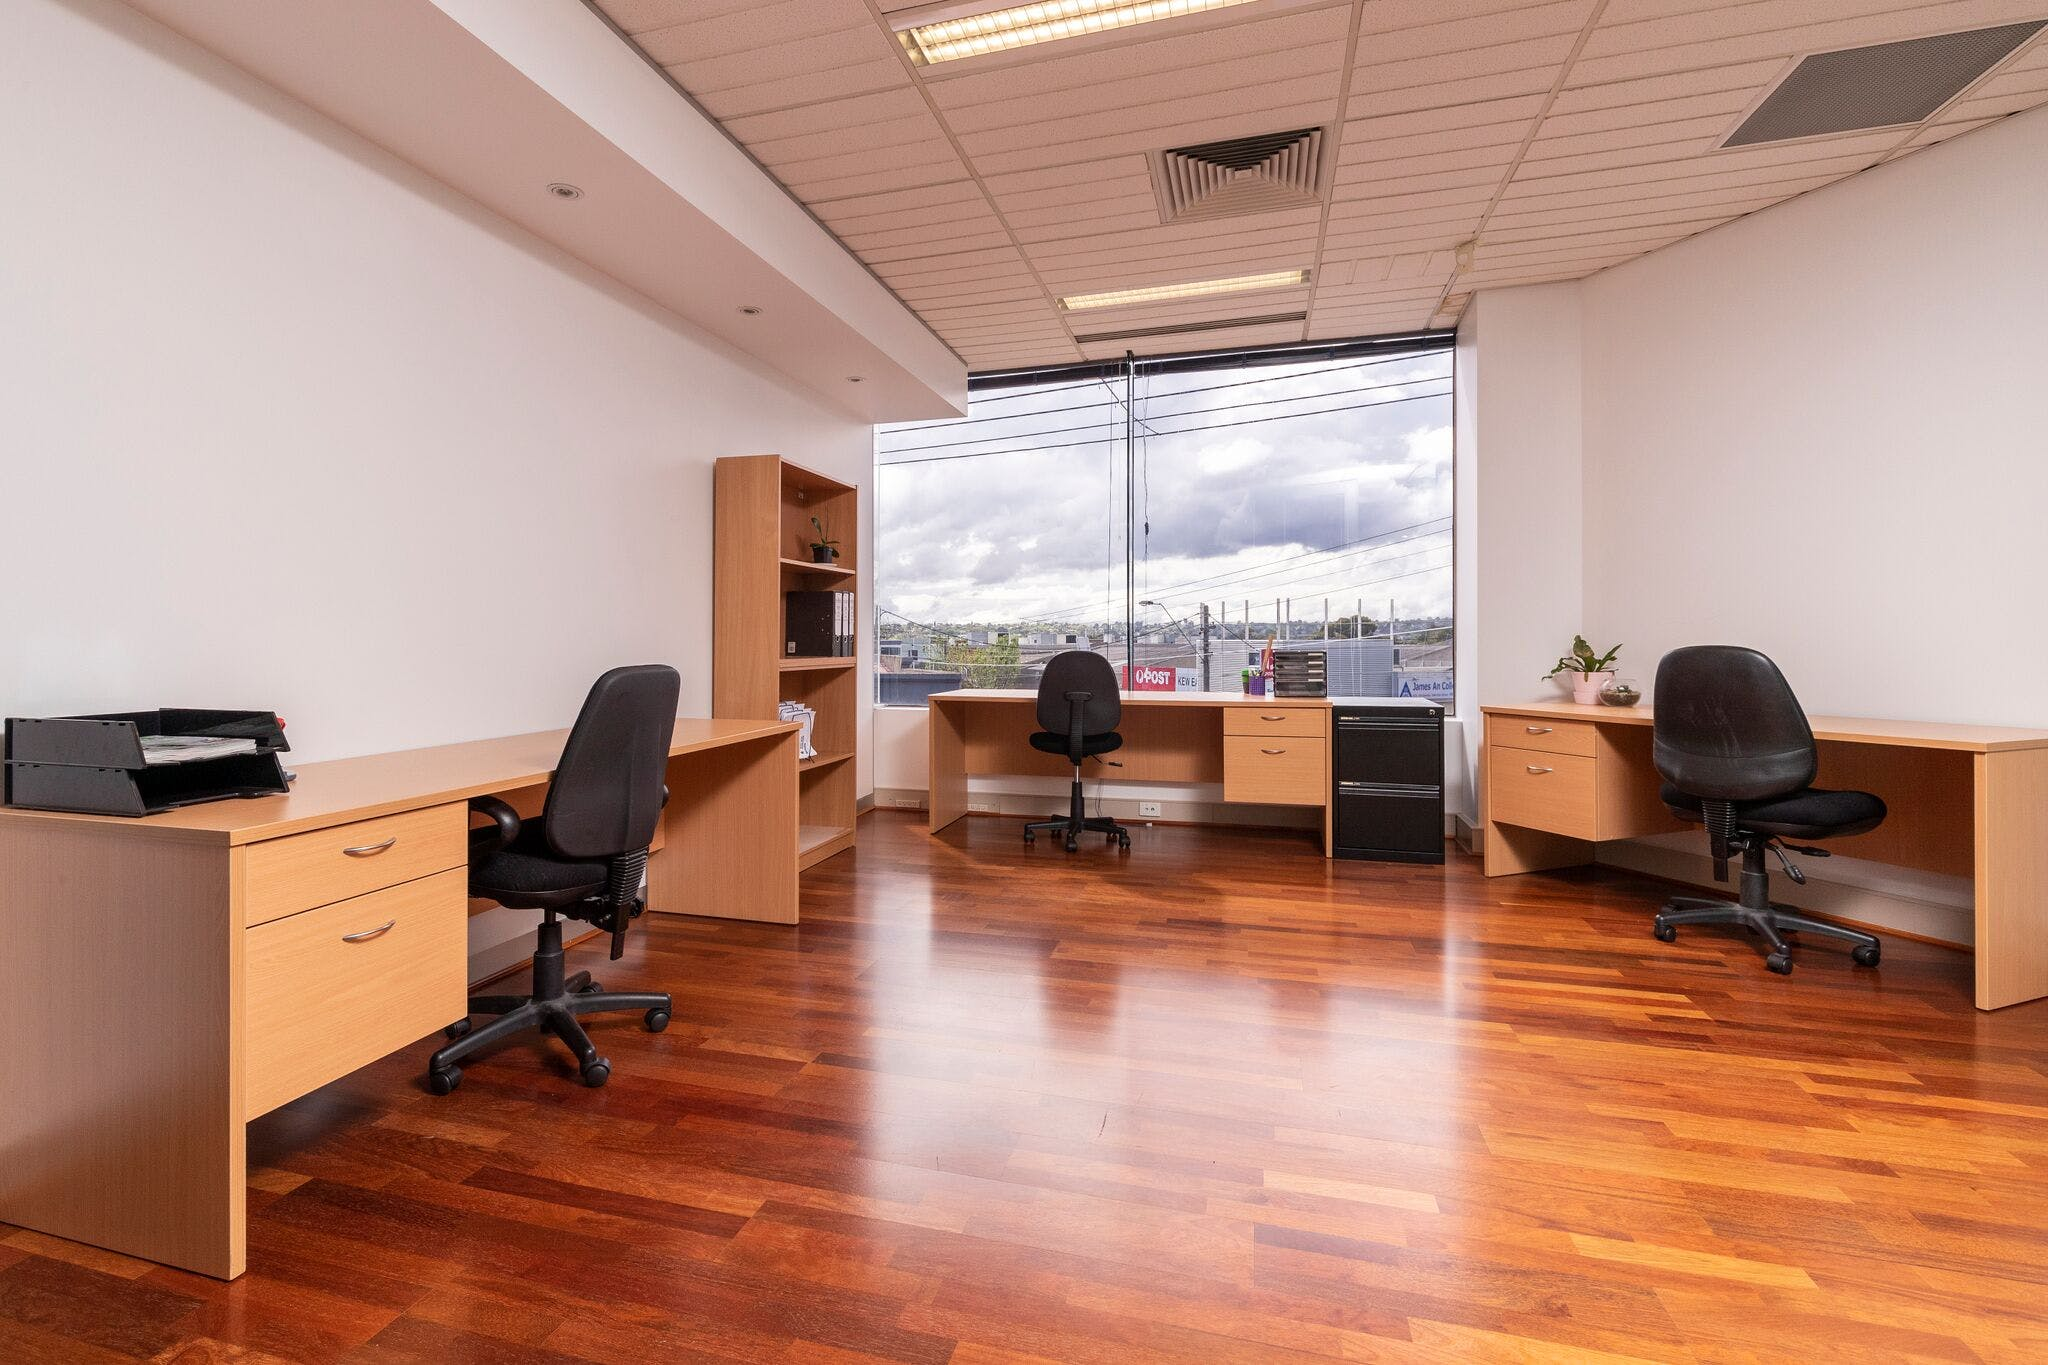 3 Person, private office at Select OwnersCorp Management, image 1